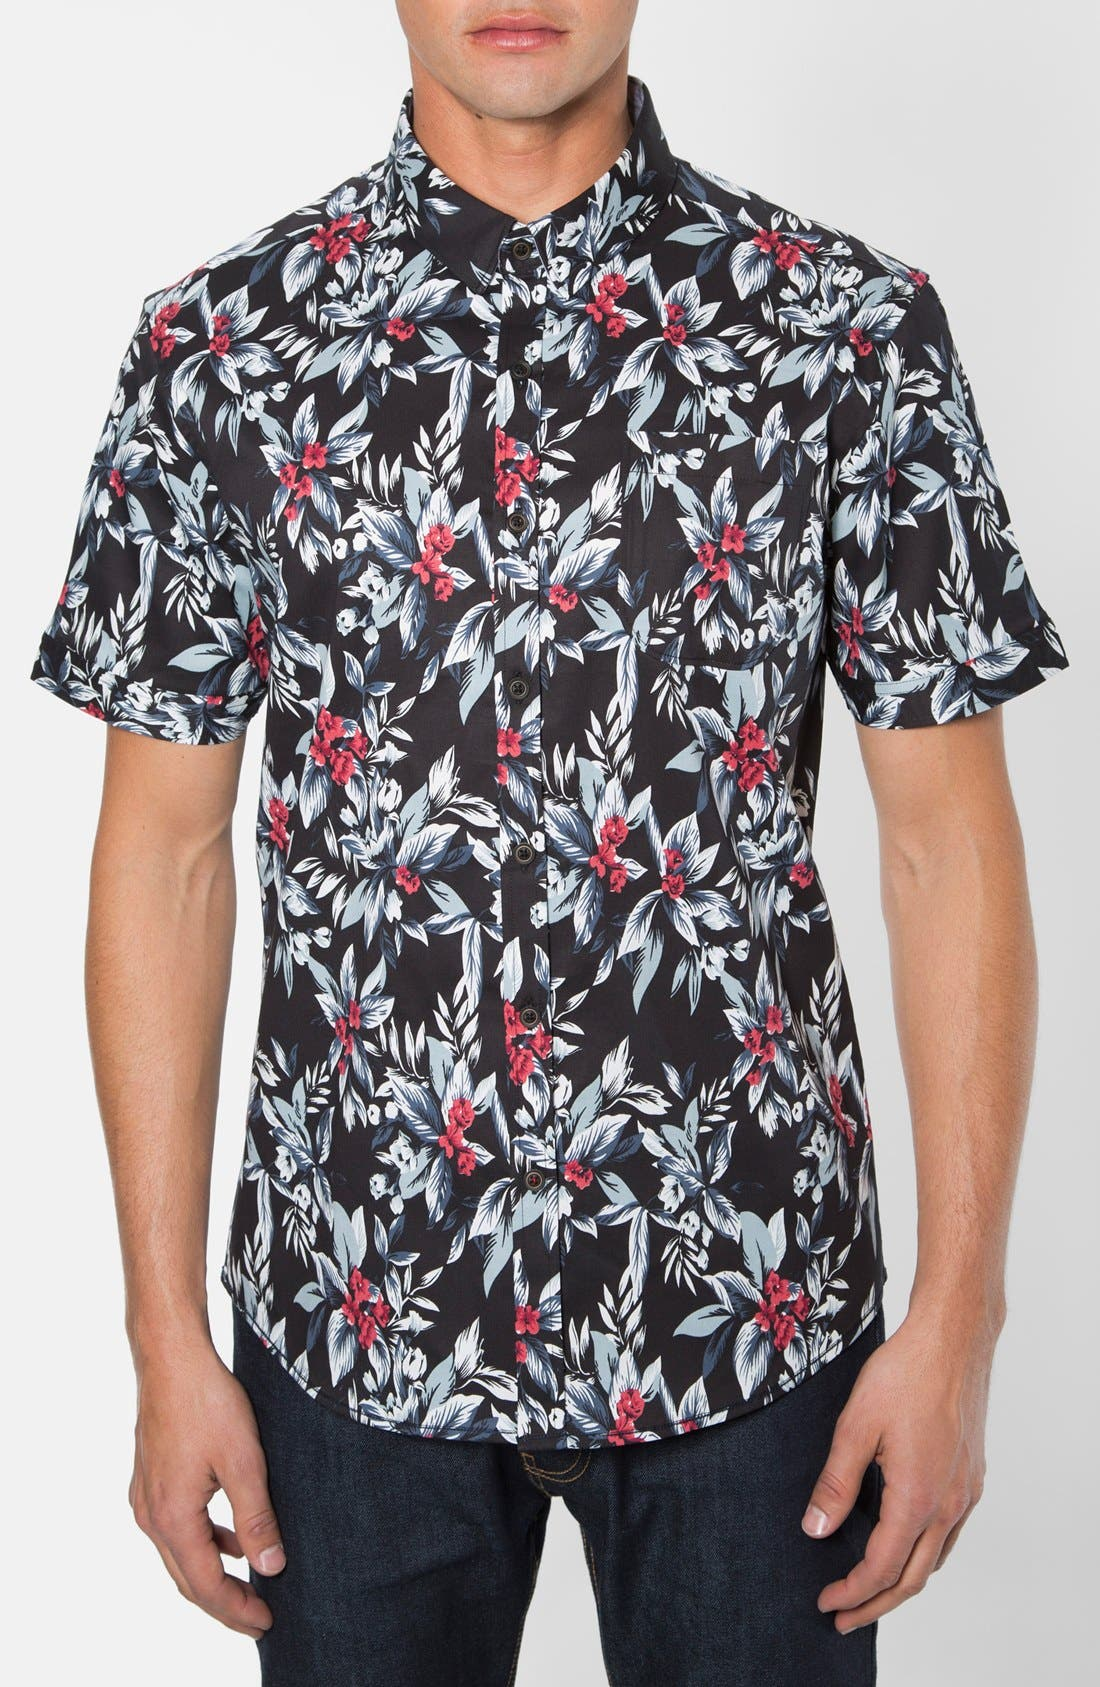 7 Diamonds 'Ignition' Trim Fit Short Sleeve Print Woven Shirt